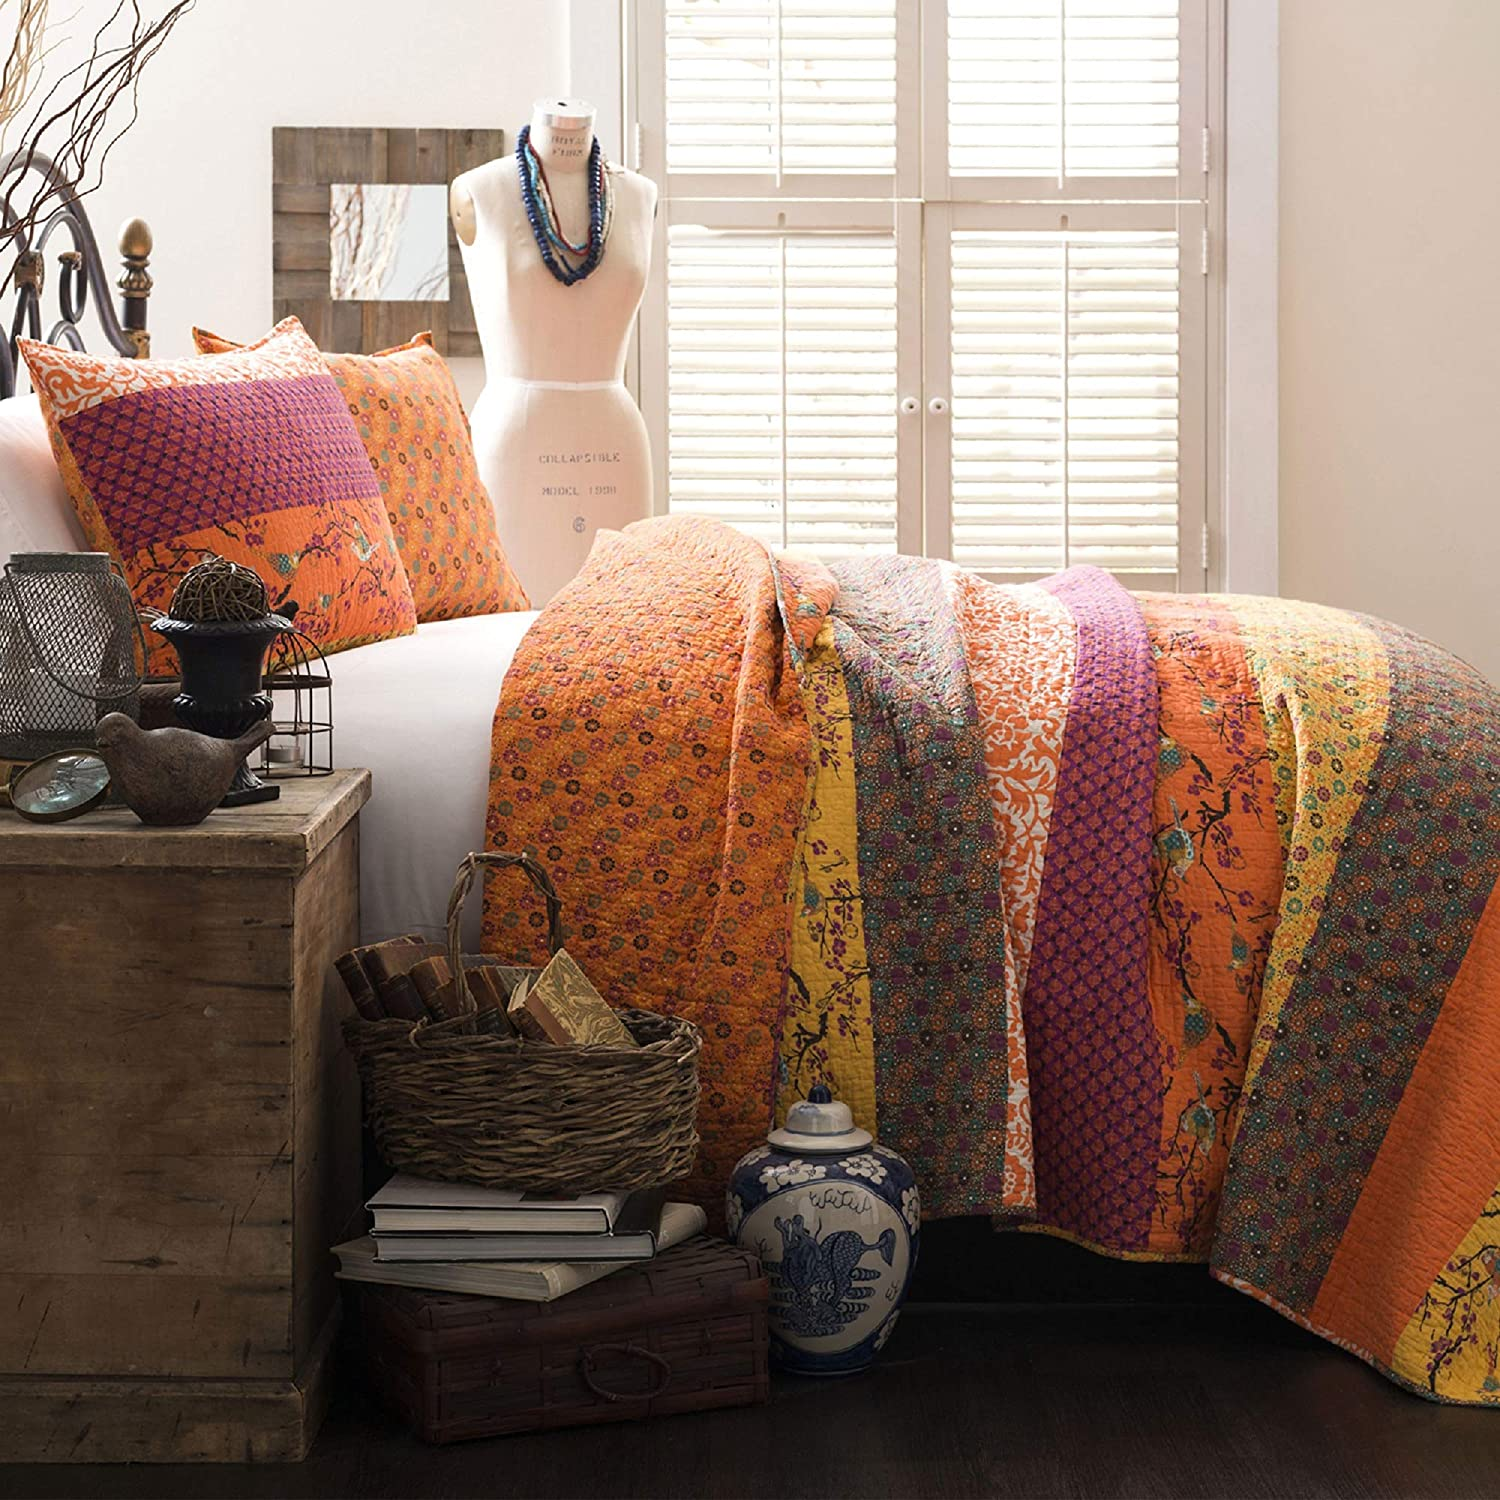 Lush Decor Royal Empire Quilt Striped Pattern Reversible 3 Piece Bedding Set, Full Queen, Tangerine